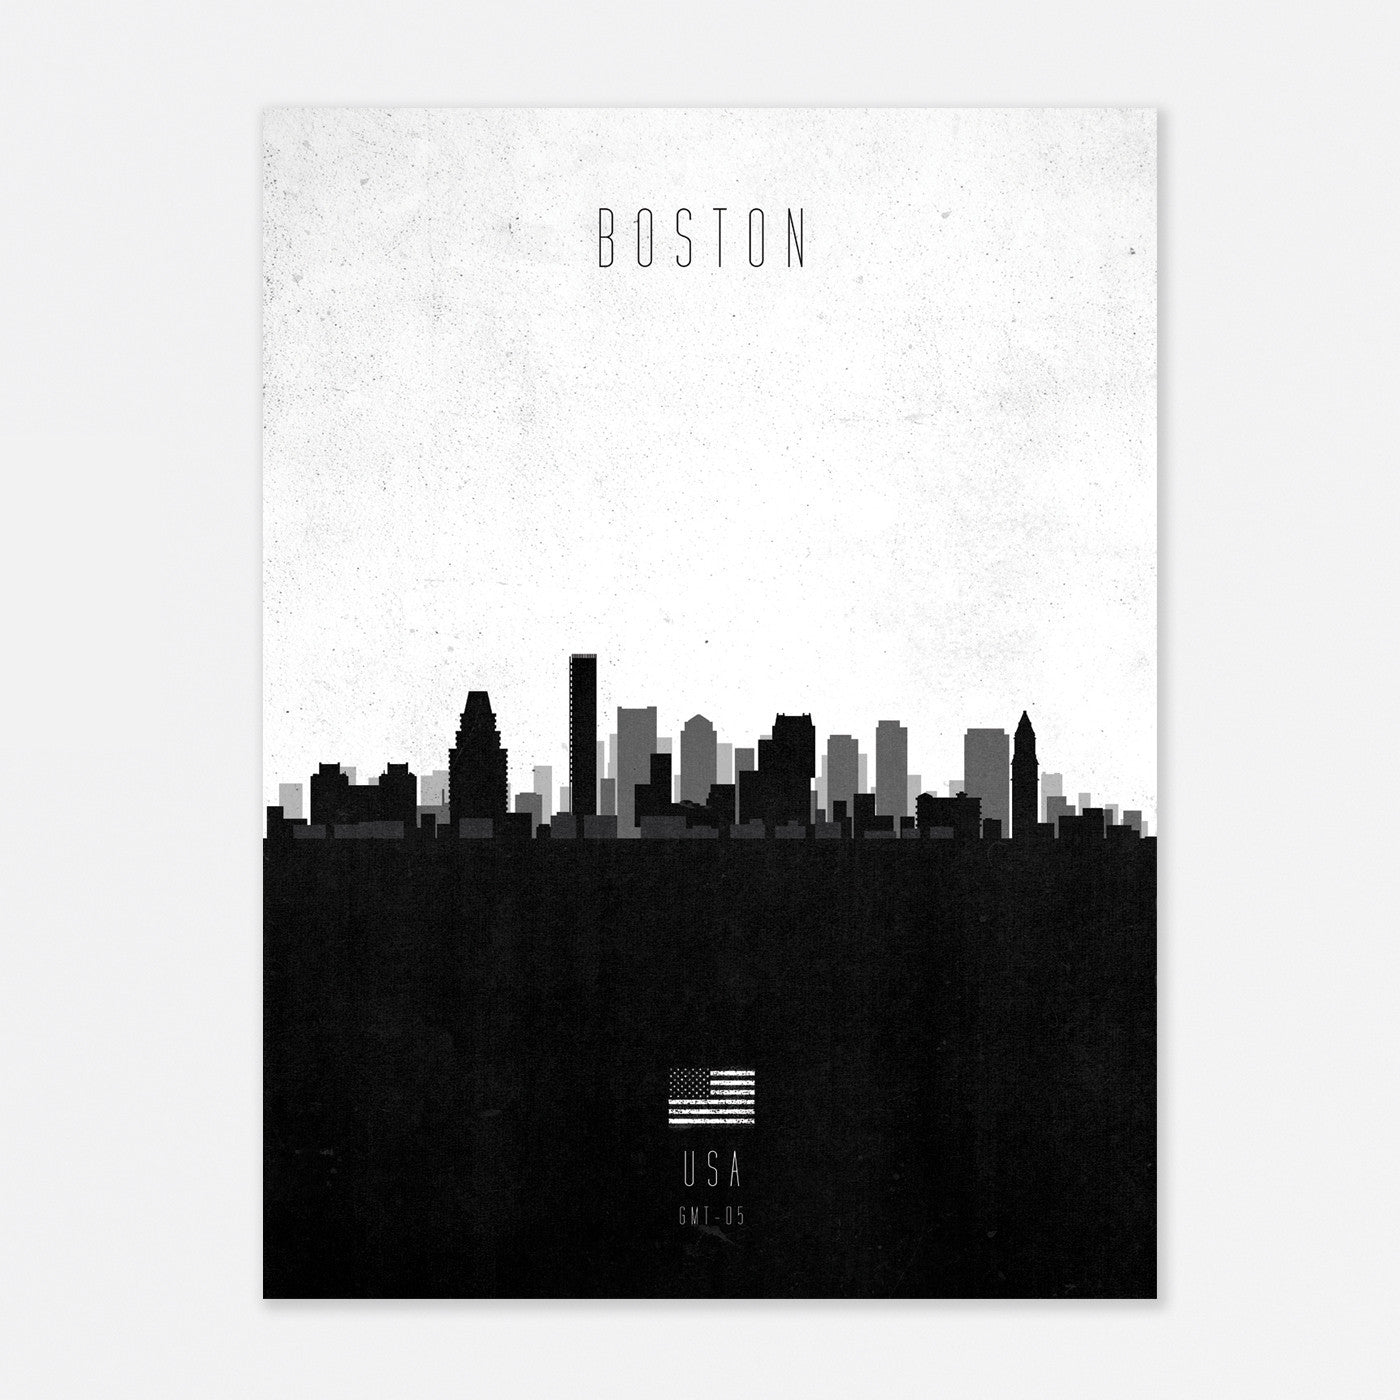 Boston: GMT -05